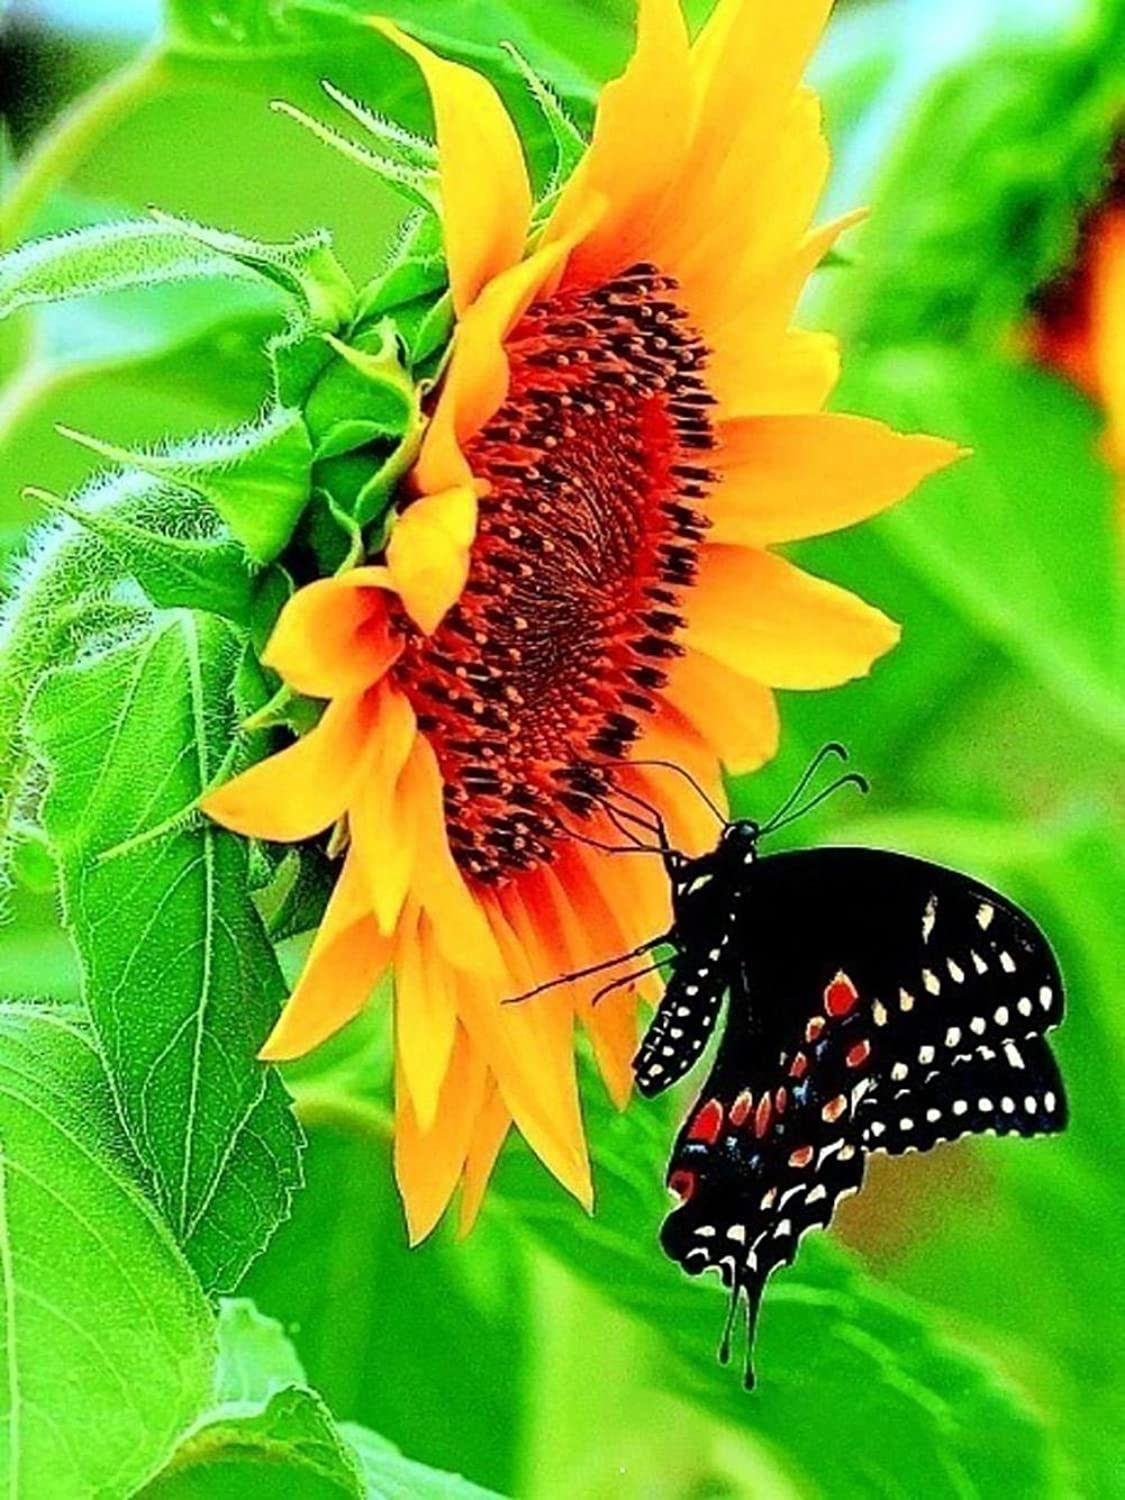 Sunflower Diamond Painting 5D DIY Full Drill Diamond Painting Butterfly Craft Resin Rhineston Animal Pasted Cross Stitch Flower Diamond Mosaic Stickers Canvas For Room Living Wall Decoration , 6080 cm